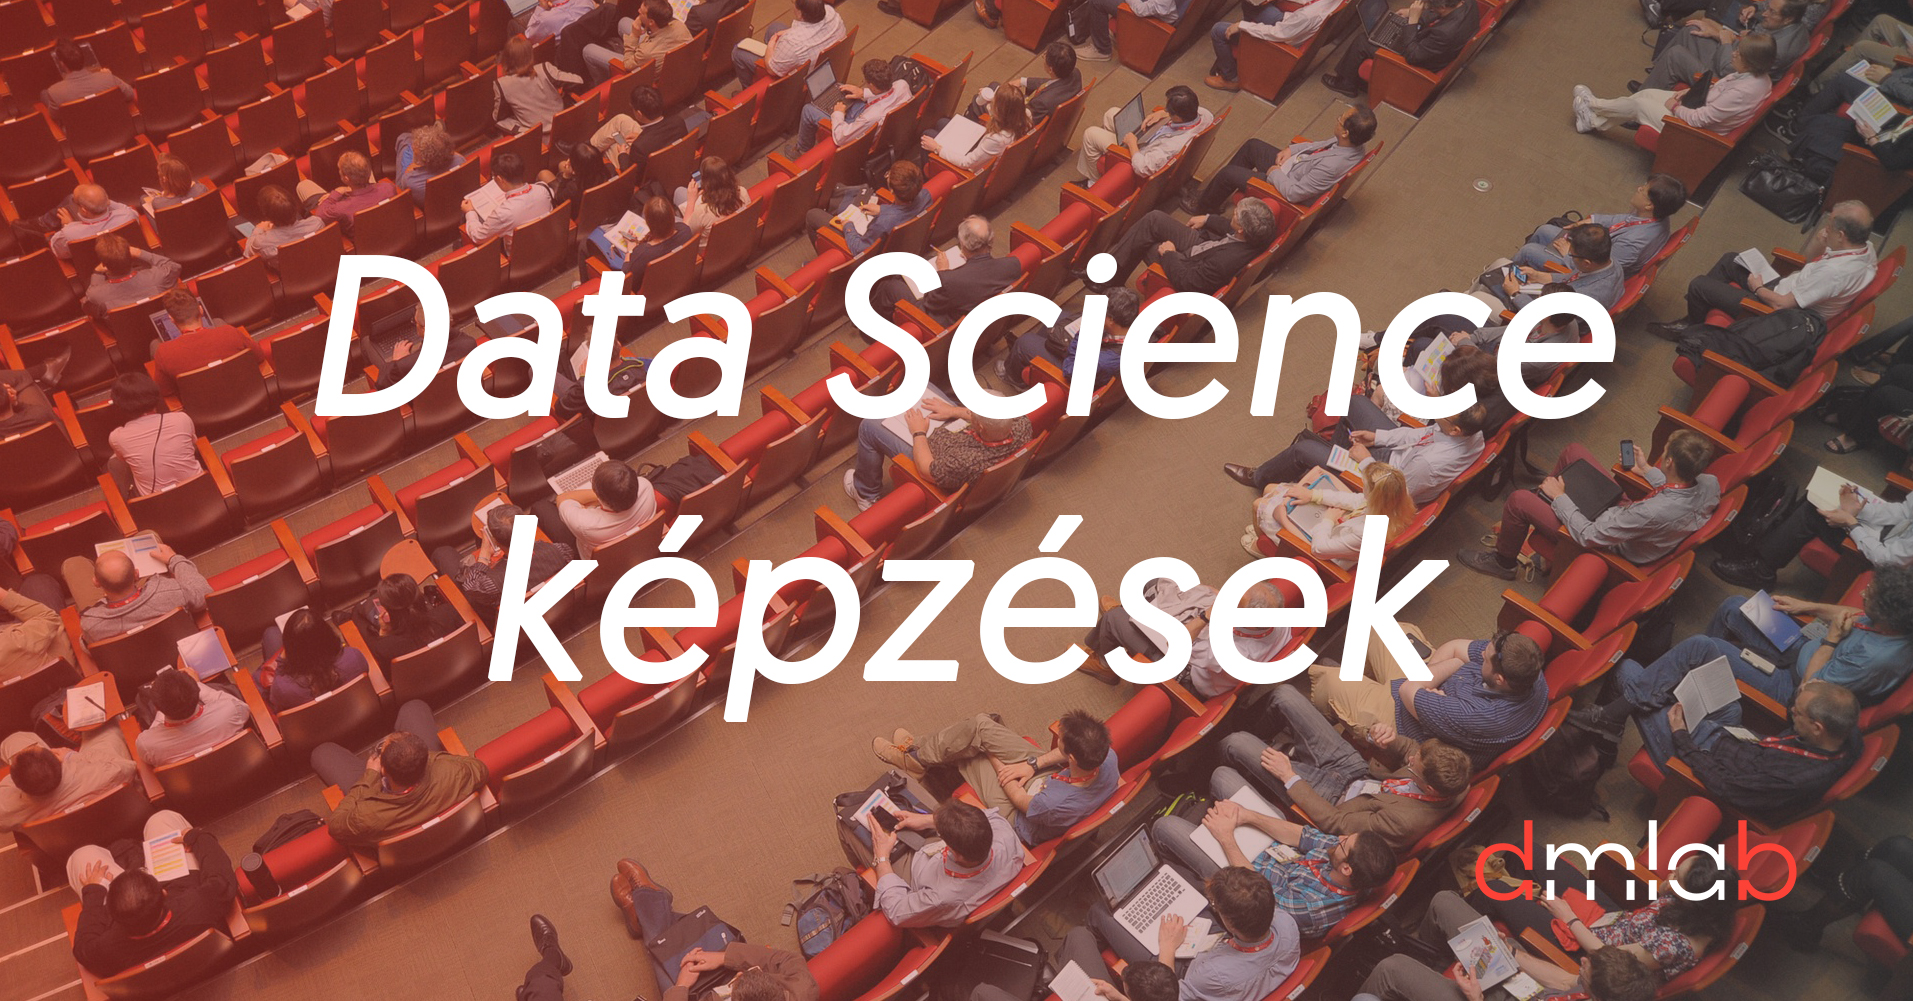 data_science_kepzesek.jpg